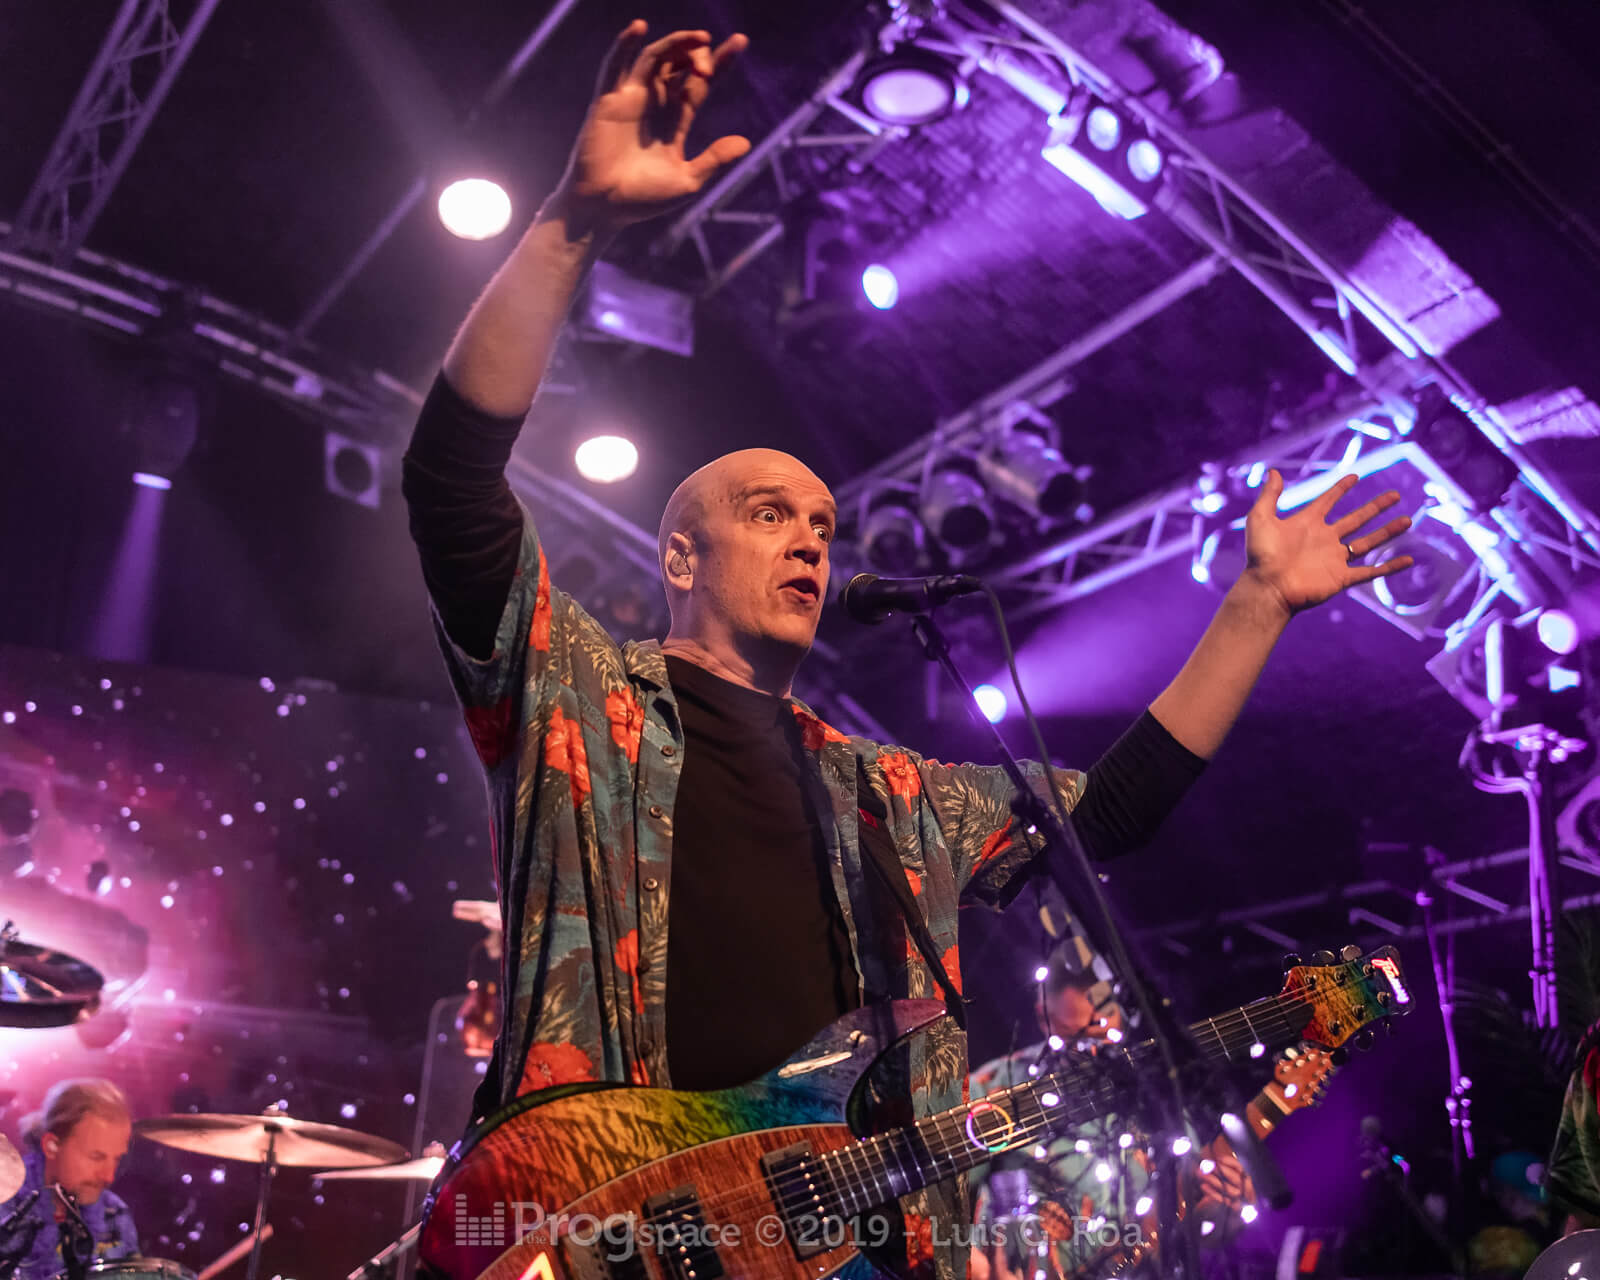 Devin Townsend live in Hamburg, 18 November 2019